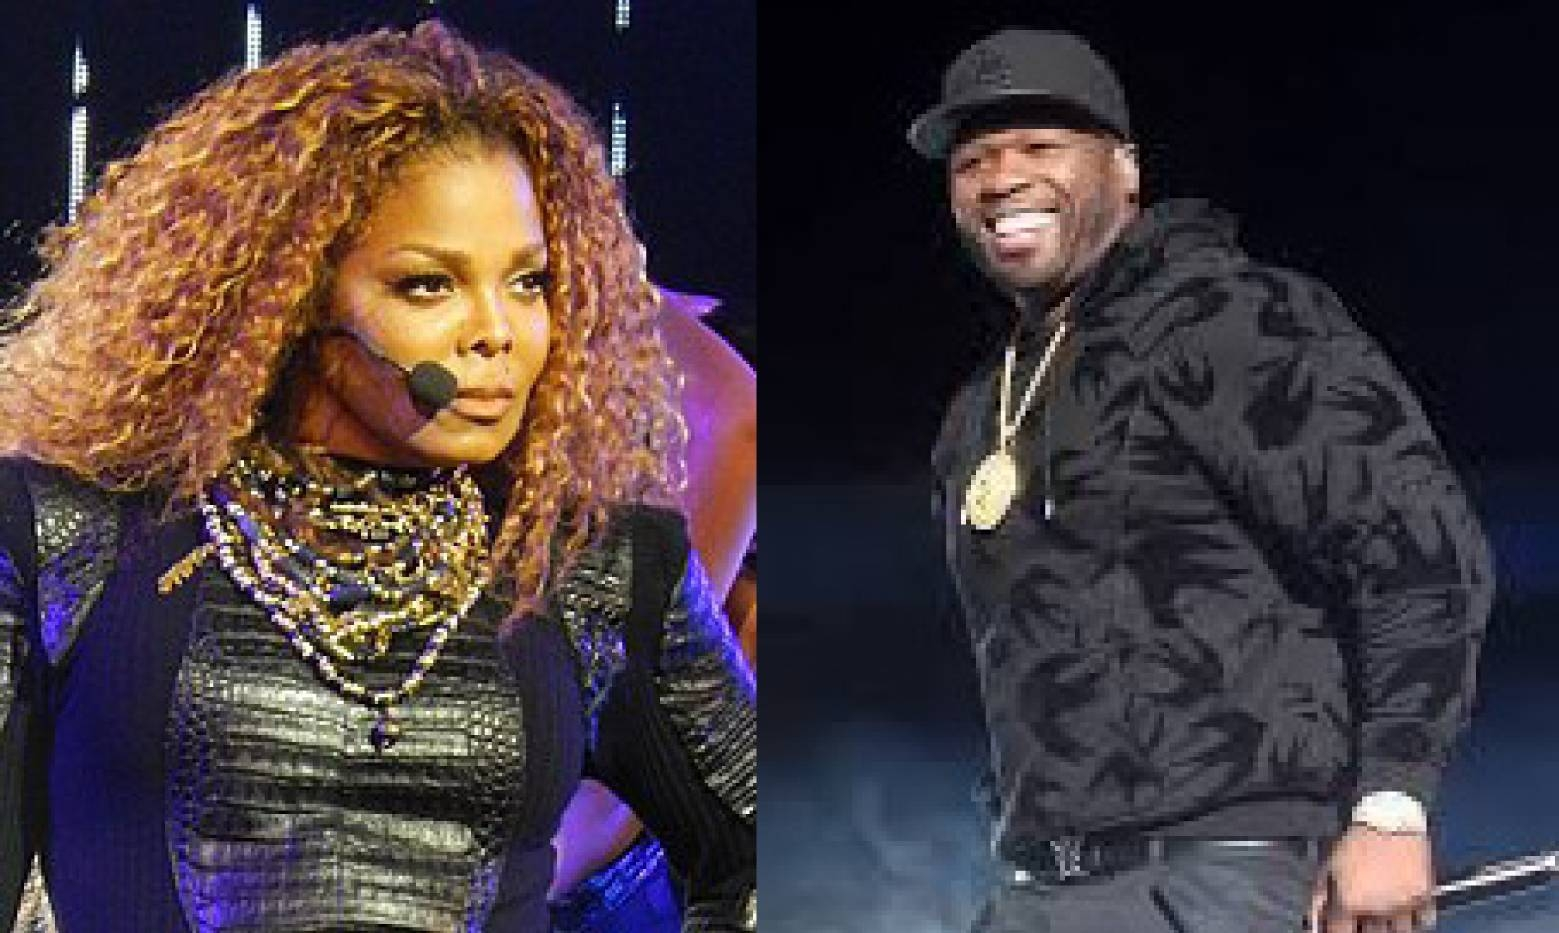 A combo picture shows pop icon Janet Jackson, left, and rapper 50 Cent who are among musicians set to perform in Saudi Arabia organizers said Wednesday.